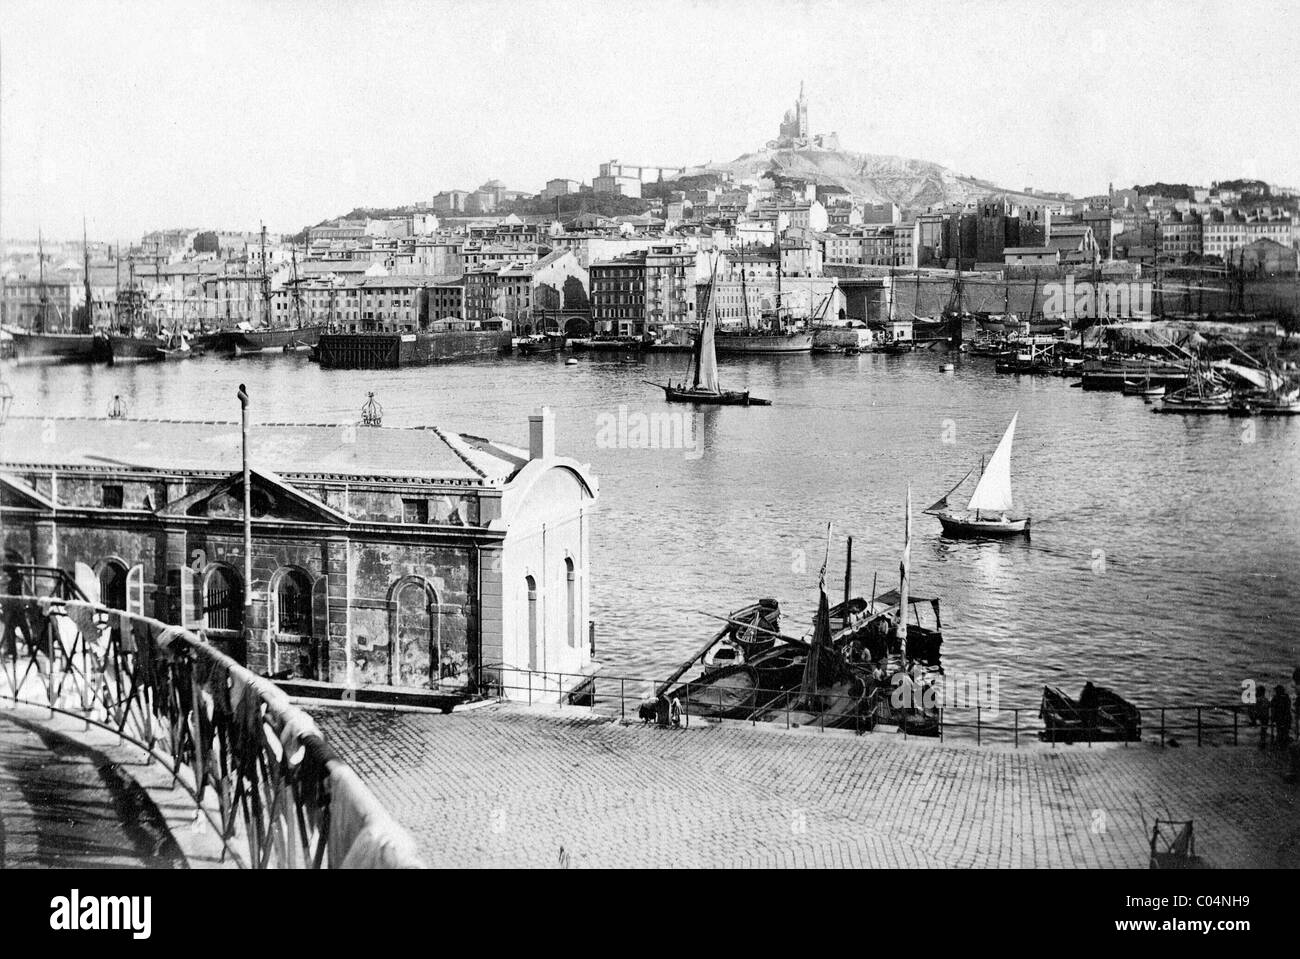 Townscape, Cityscape or View of the Old Port with Yachts or Sailing Boats, Marseille or Marseilles, France c1890 - Stock Image